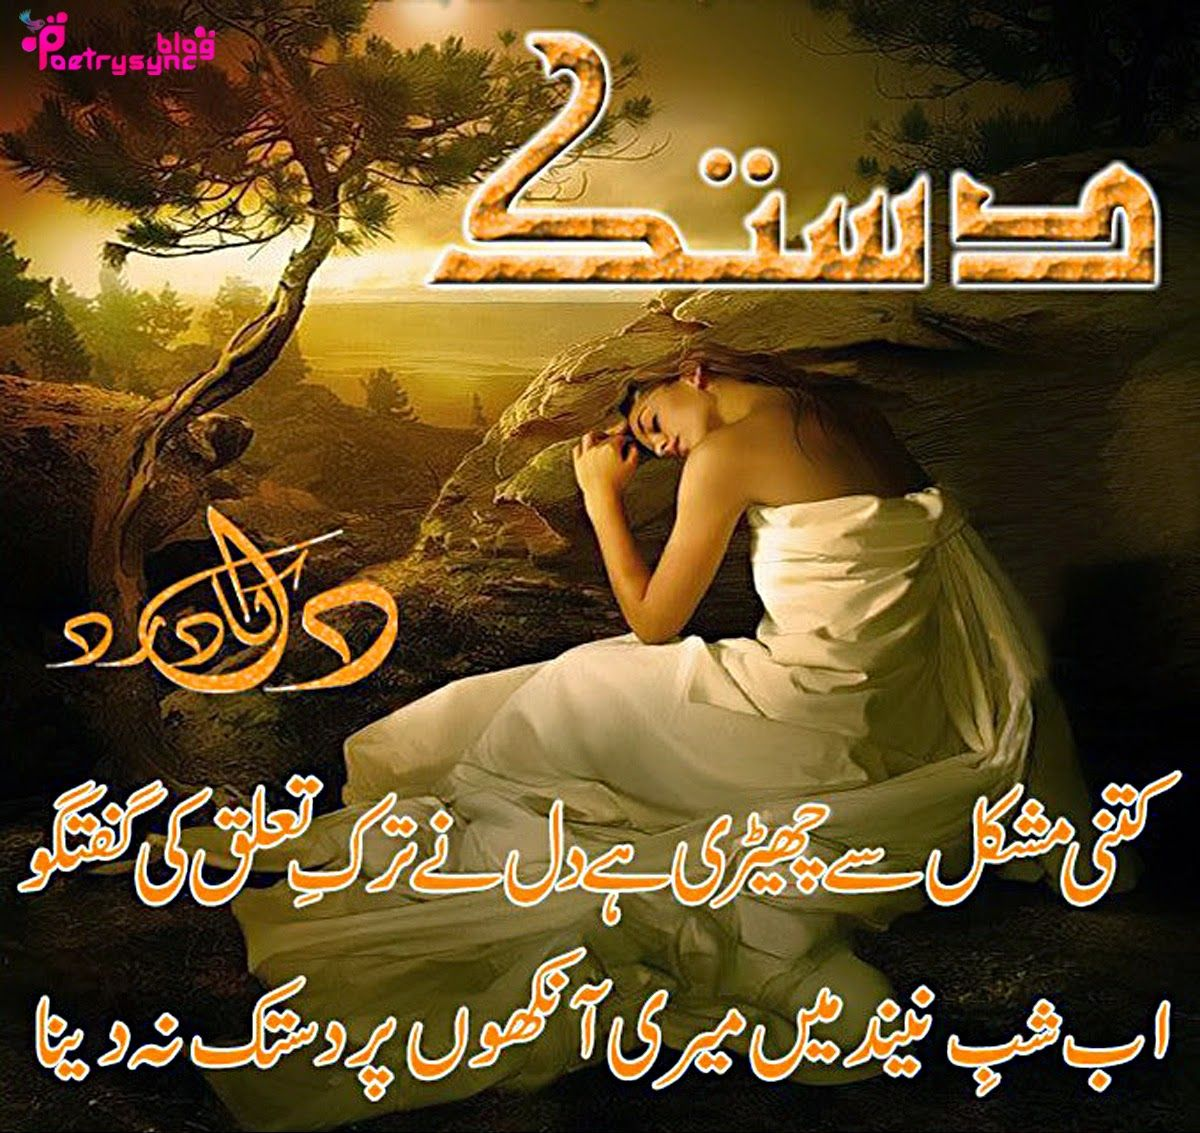 Sms Sad Quotes: Poetry: Dil Shayari/Poetry Images In Urdu Sad Mood Vol-02